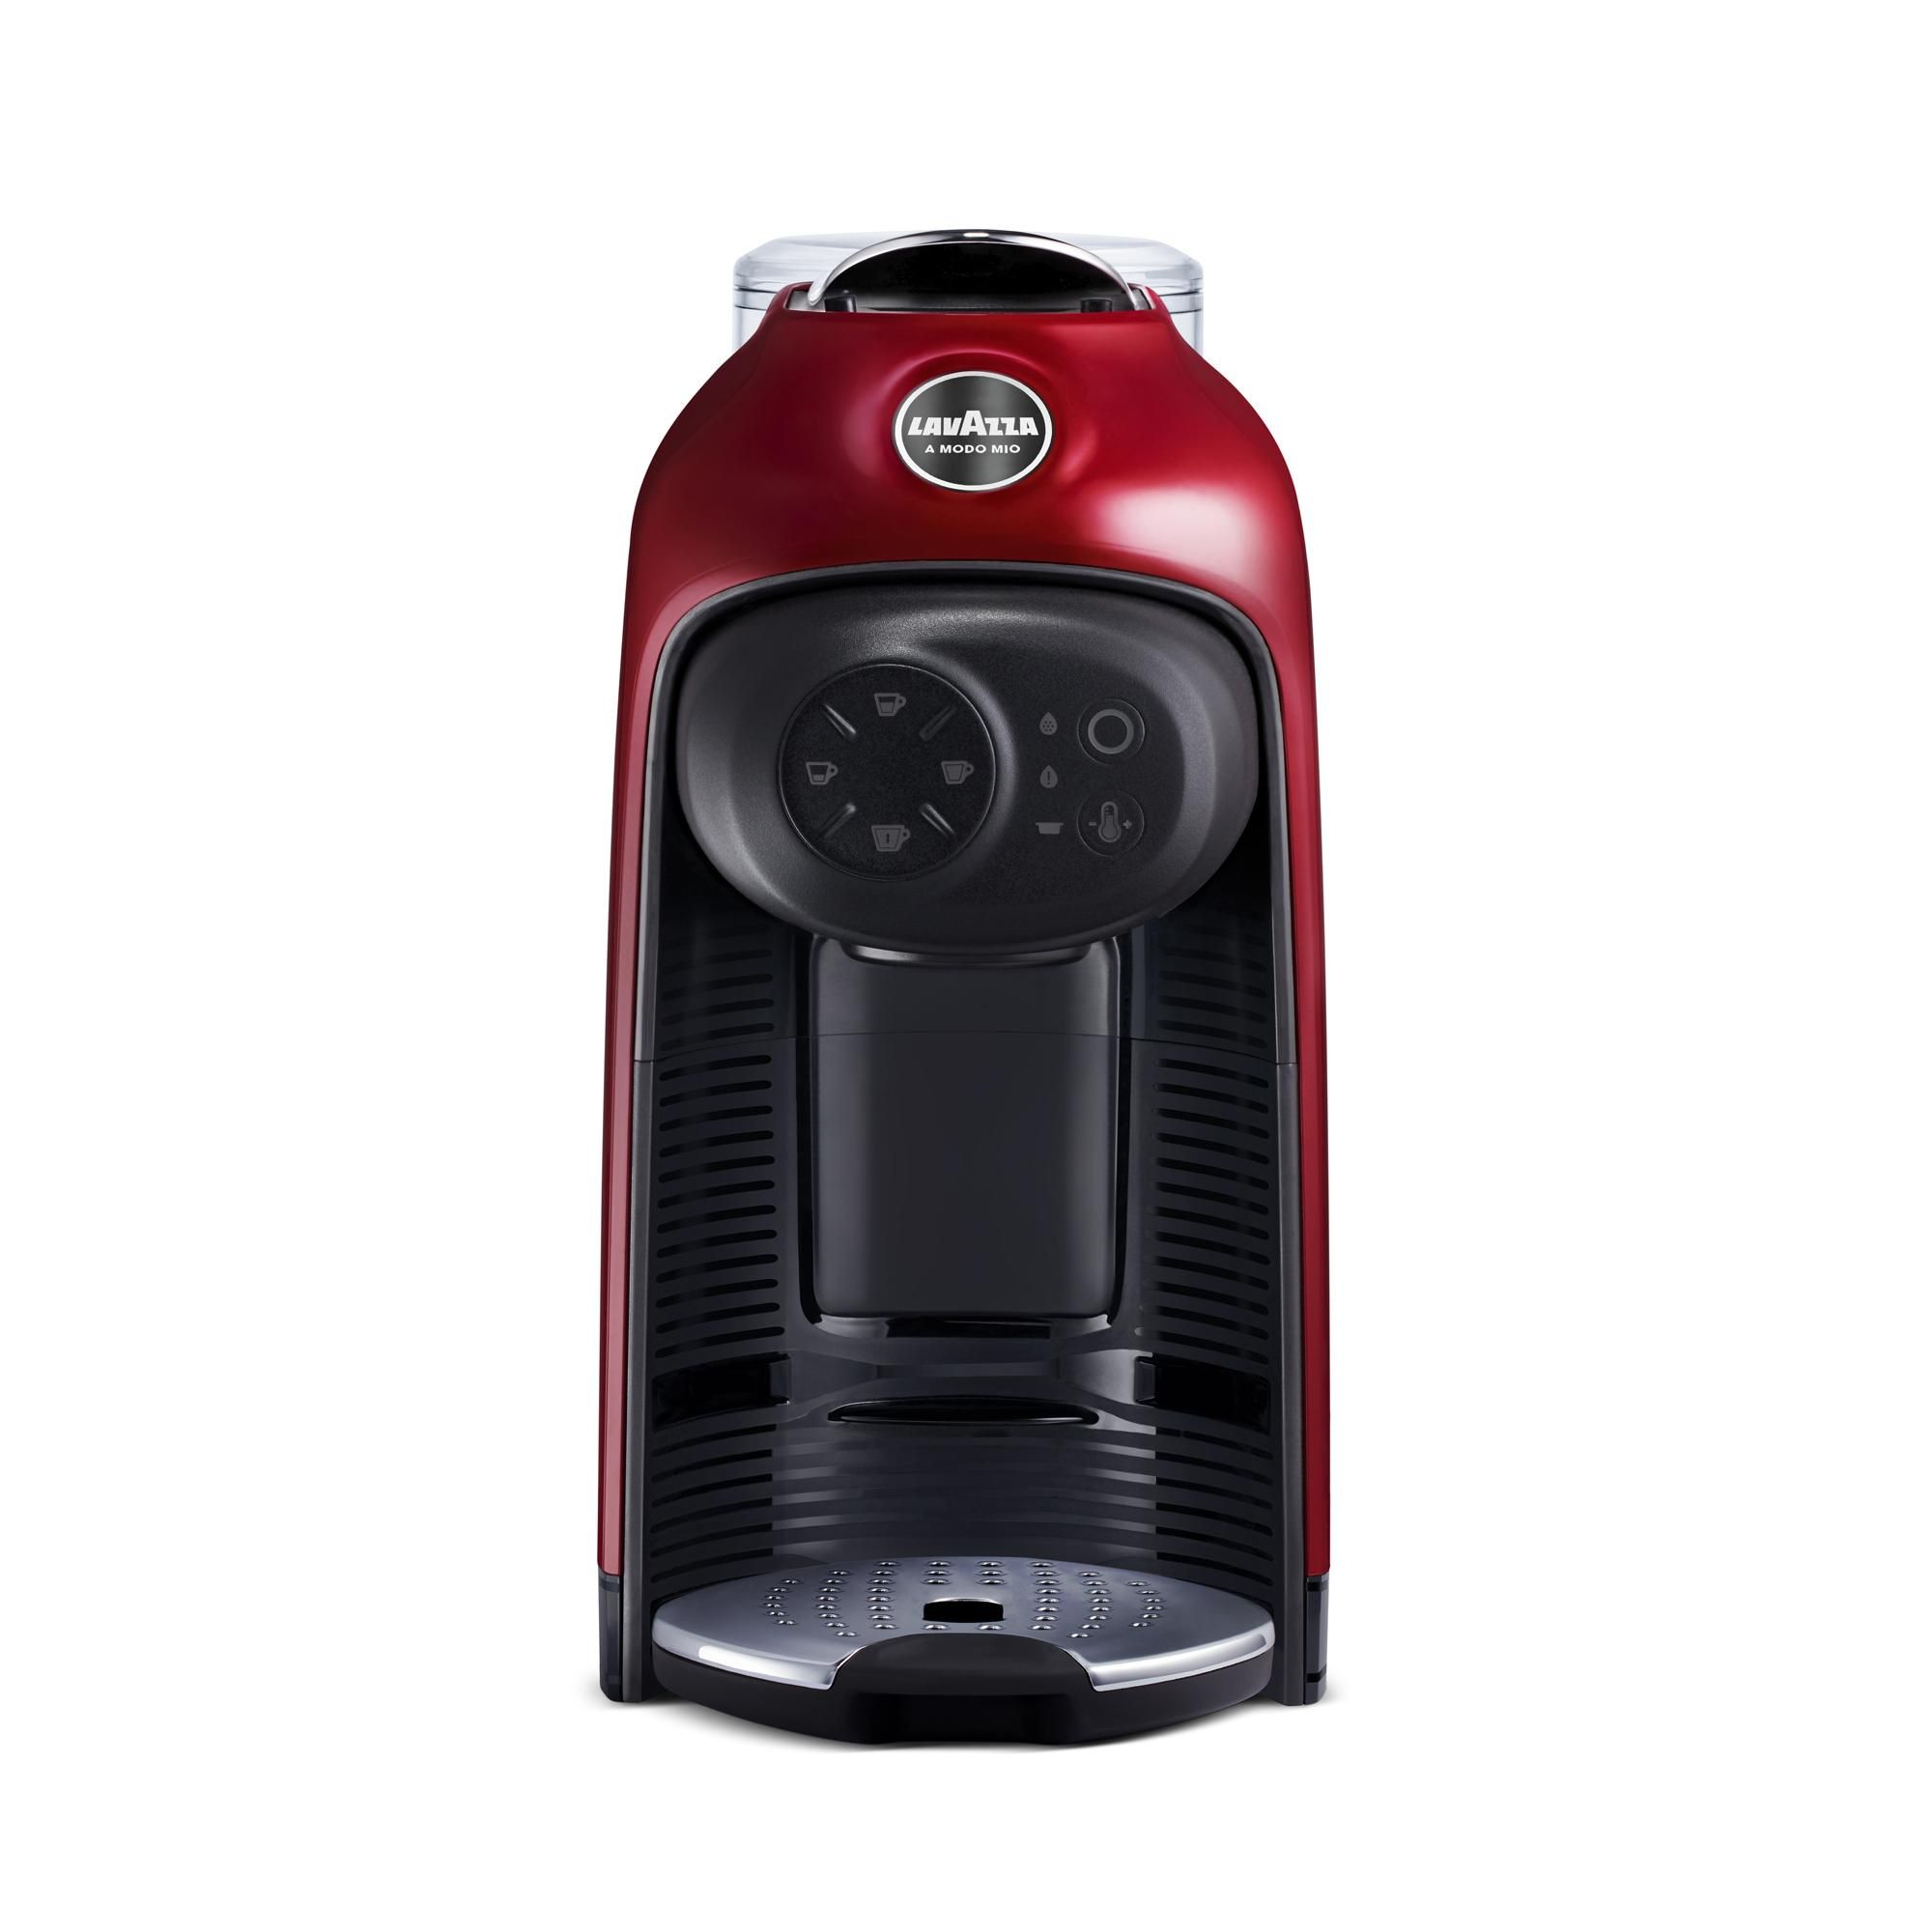 Lavazza Coffee Lavazza Idola Red Coffee Machine in 2020